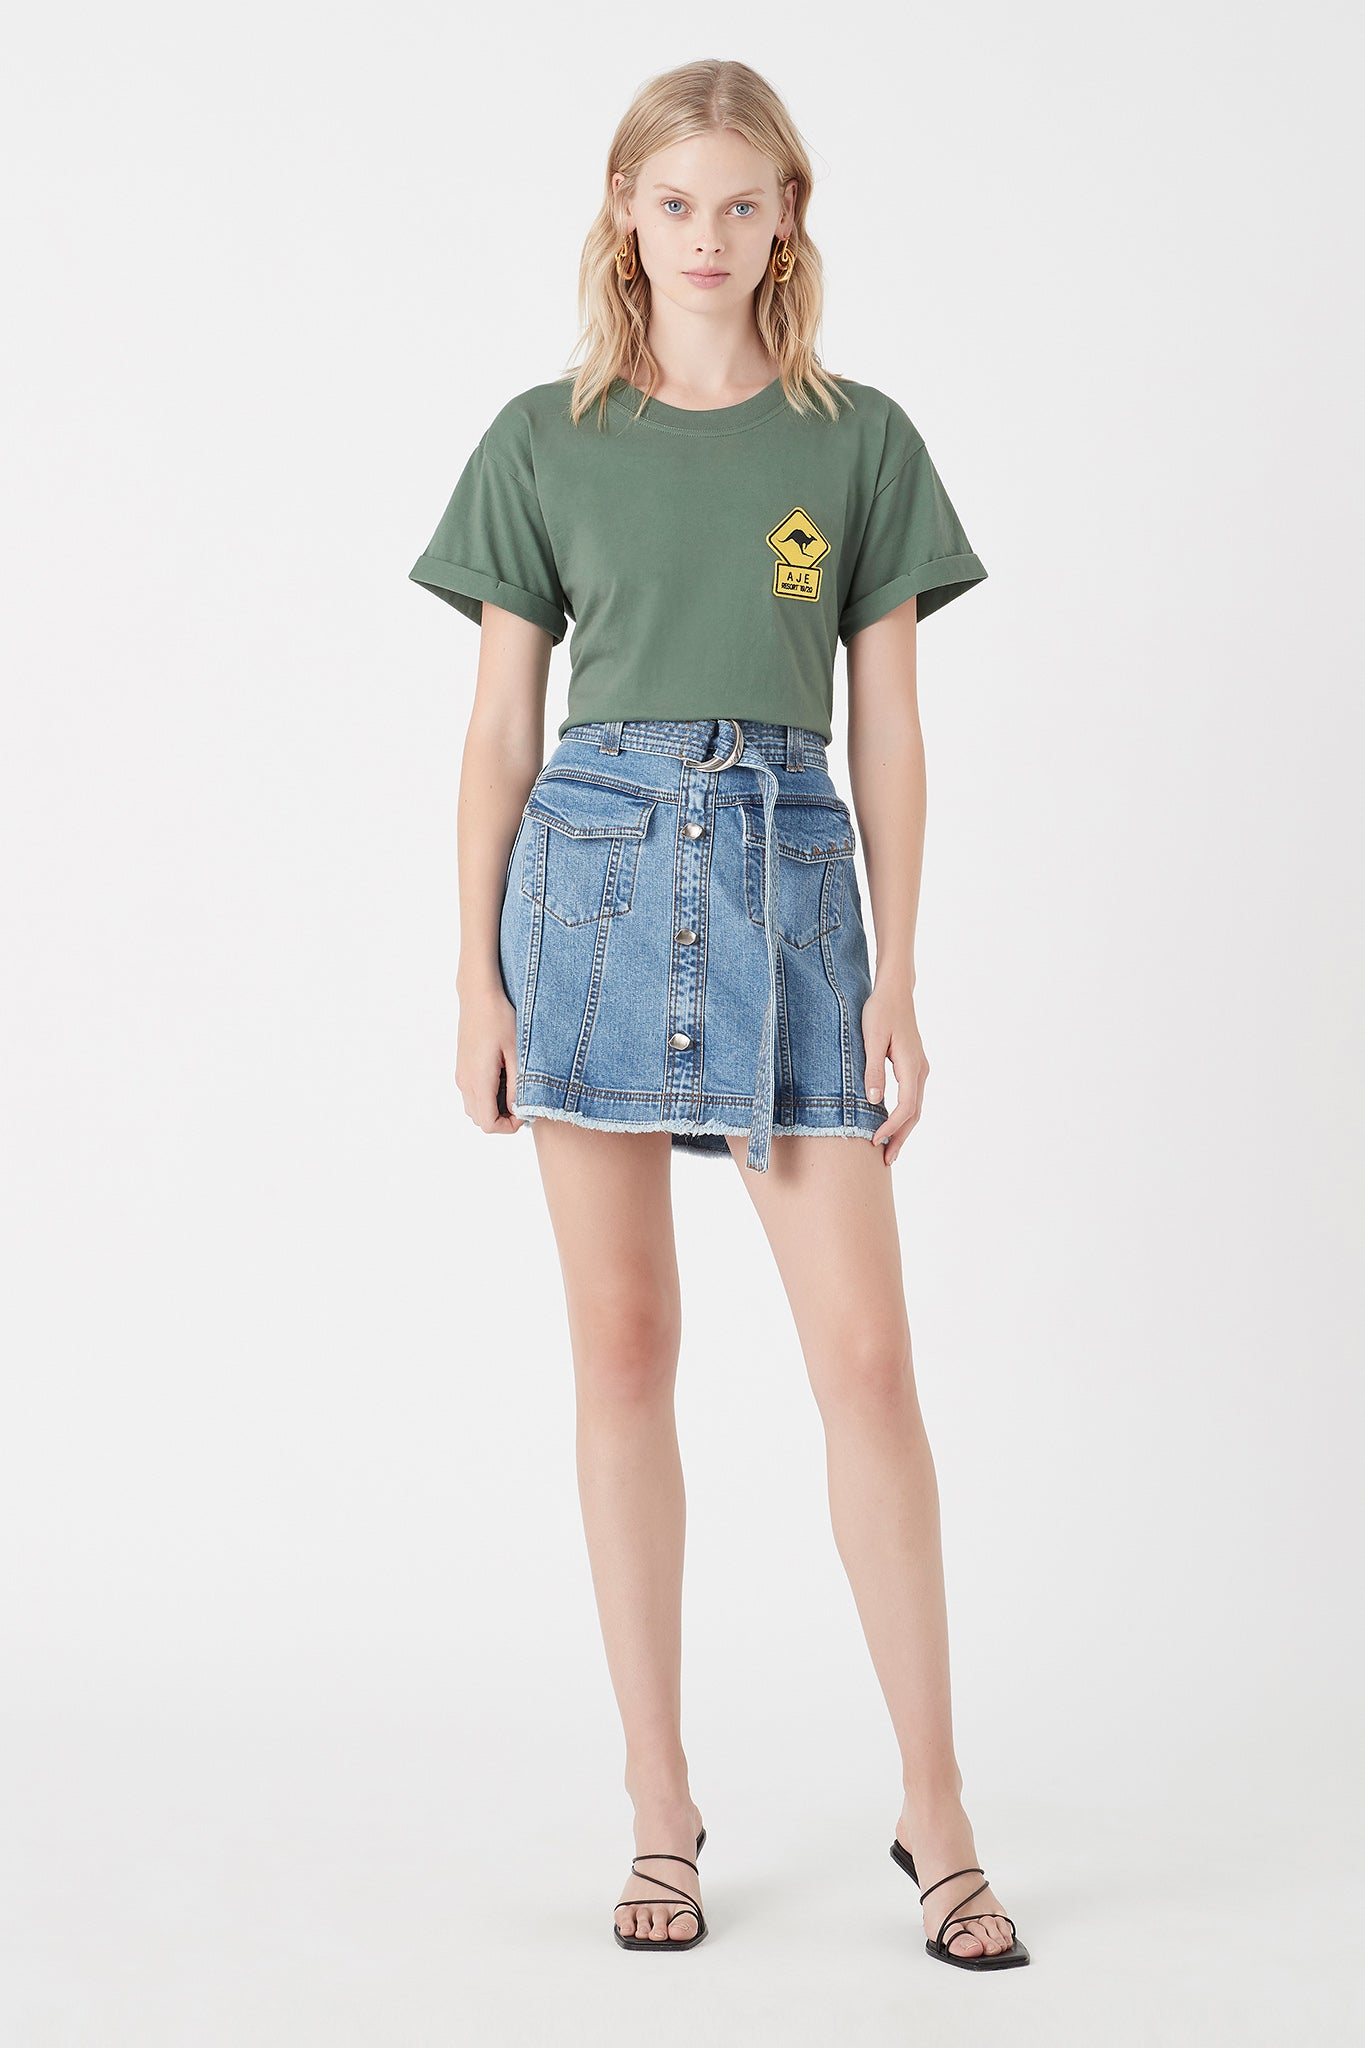 Mimosa Patch Tee Outfit View